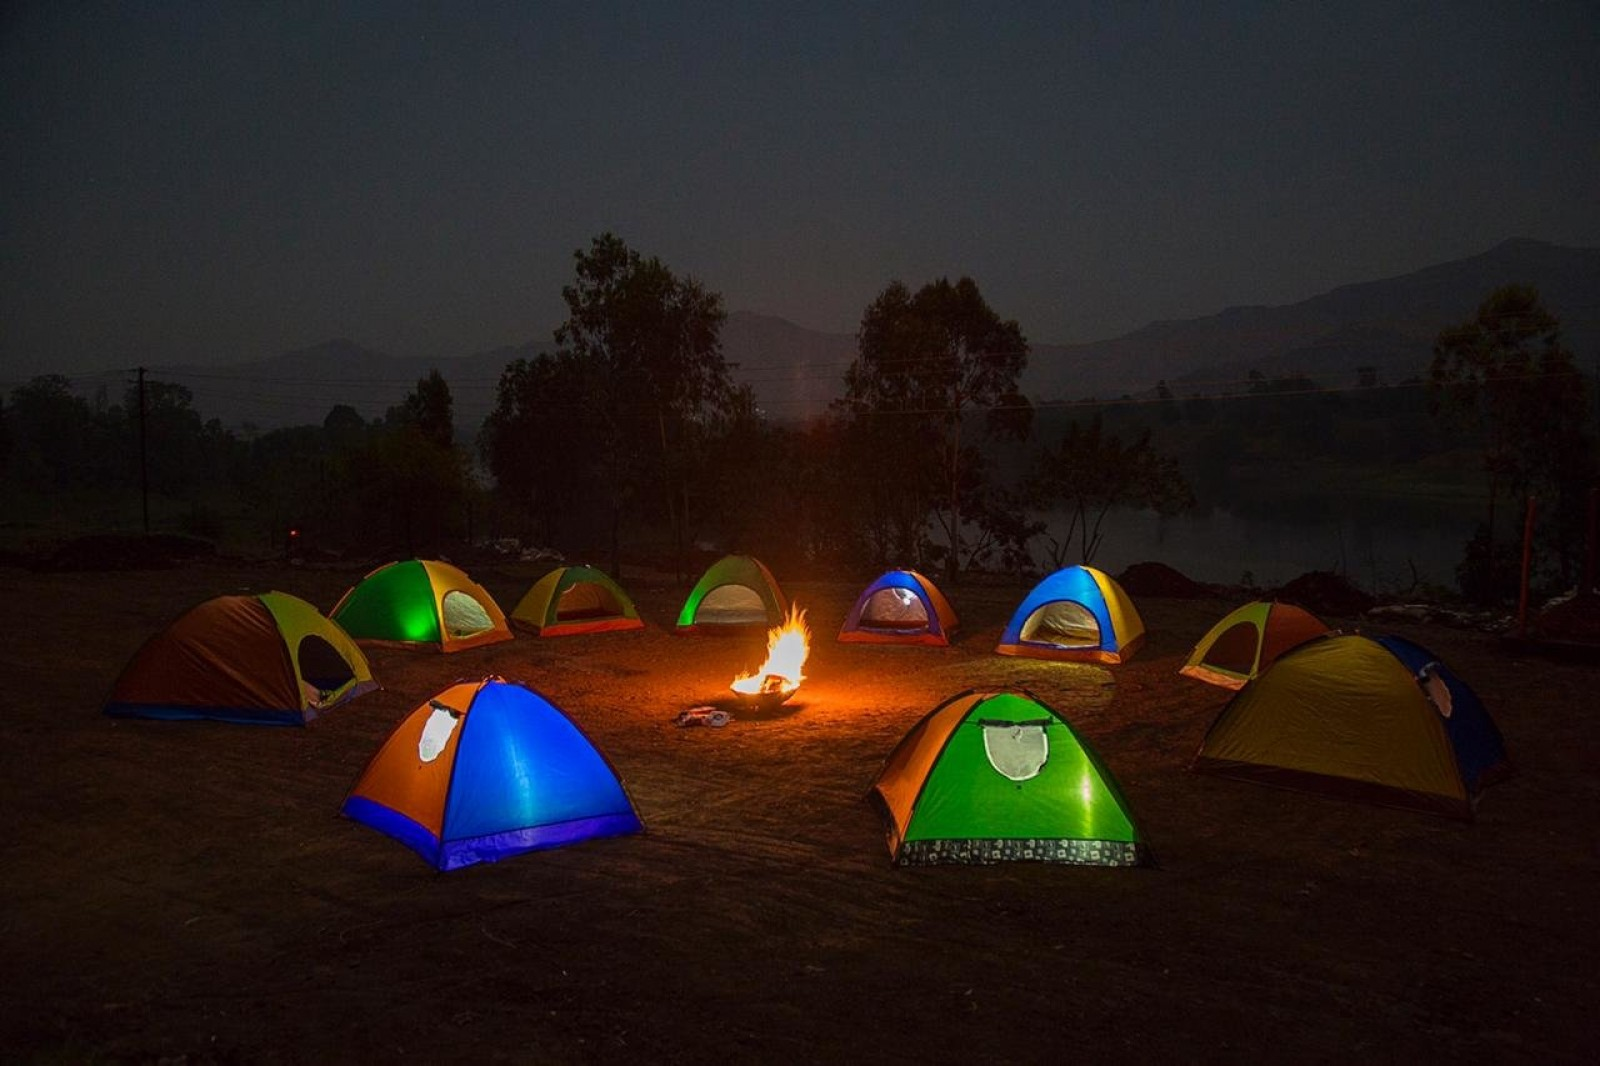 http://www.thegreatnext.com/Bhor Camping Maharashtra The Great Next Adventure Travel